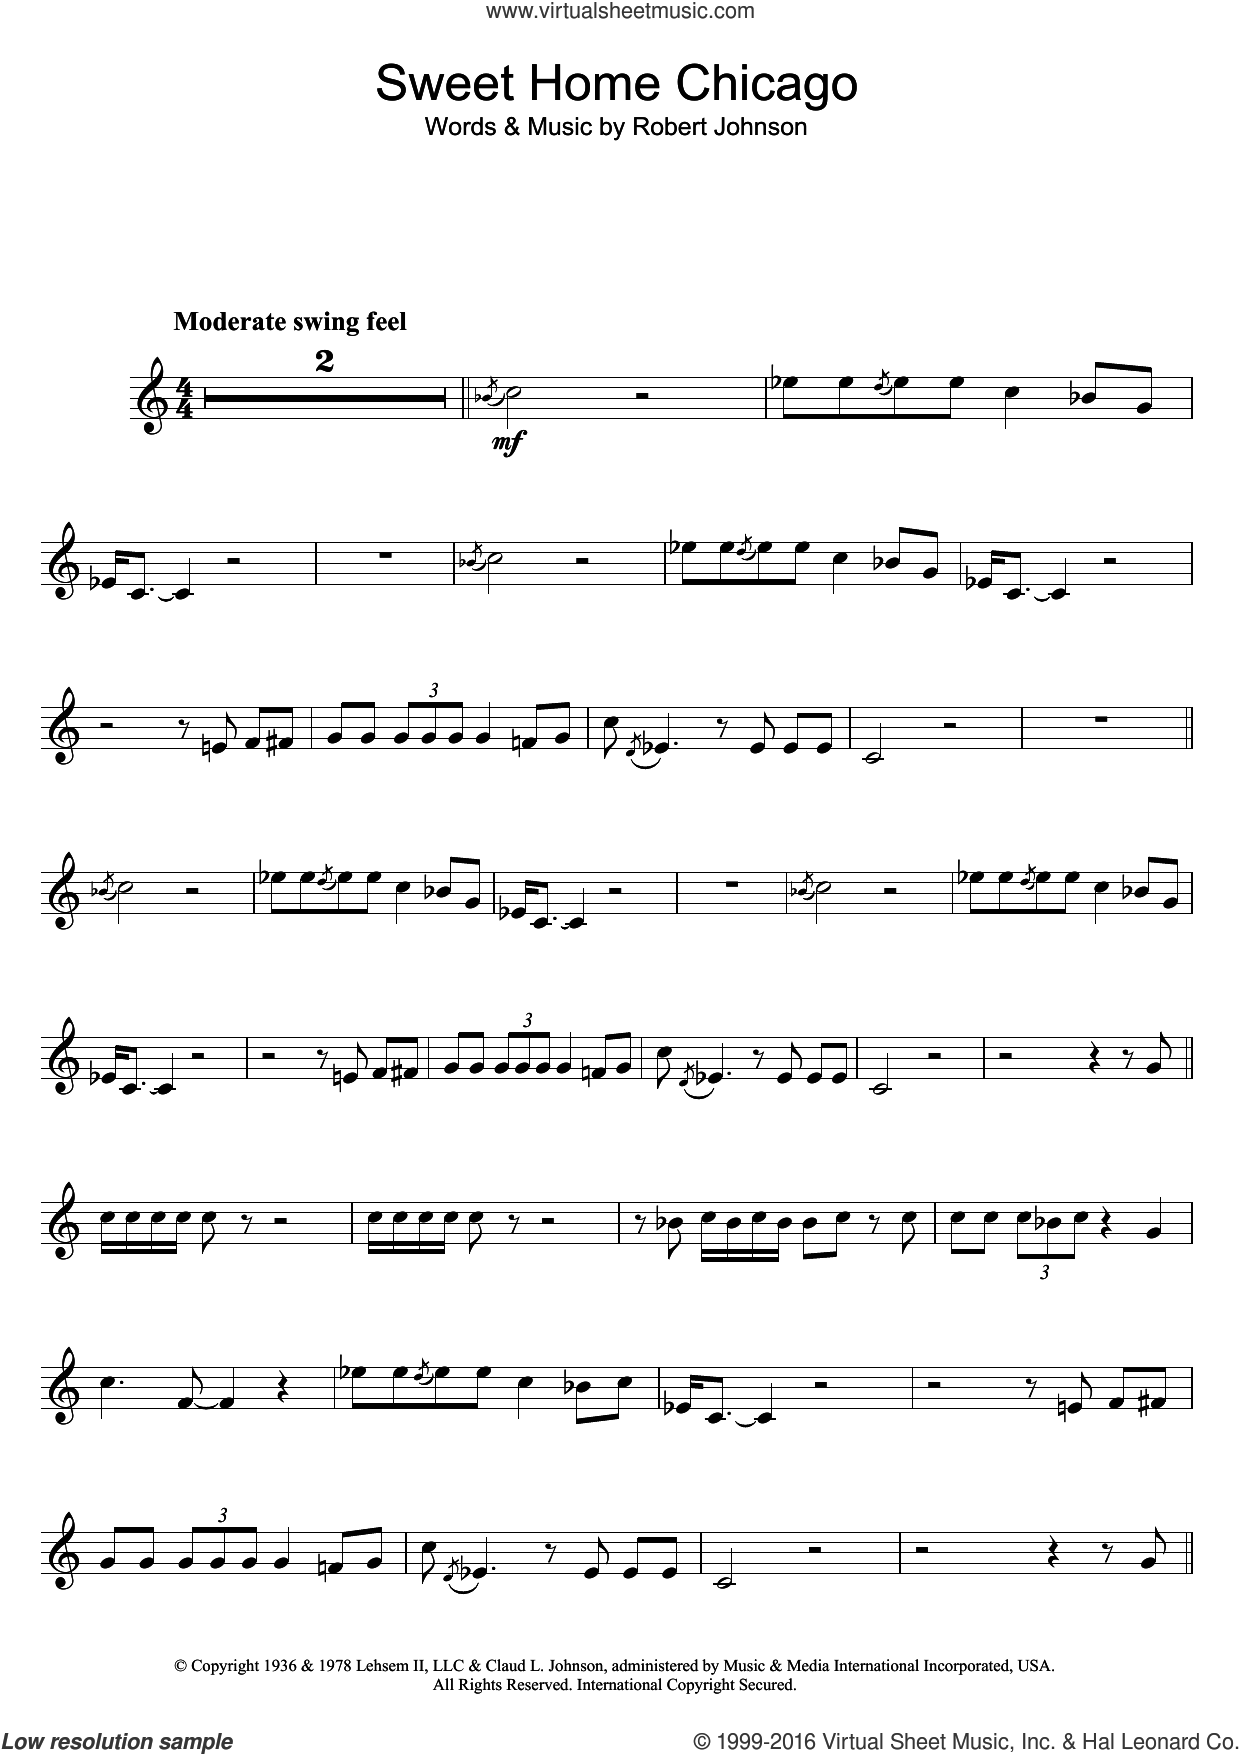 Sweet Home Chicago sheet music for clarinet solo by Robert Johnson, intermediate